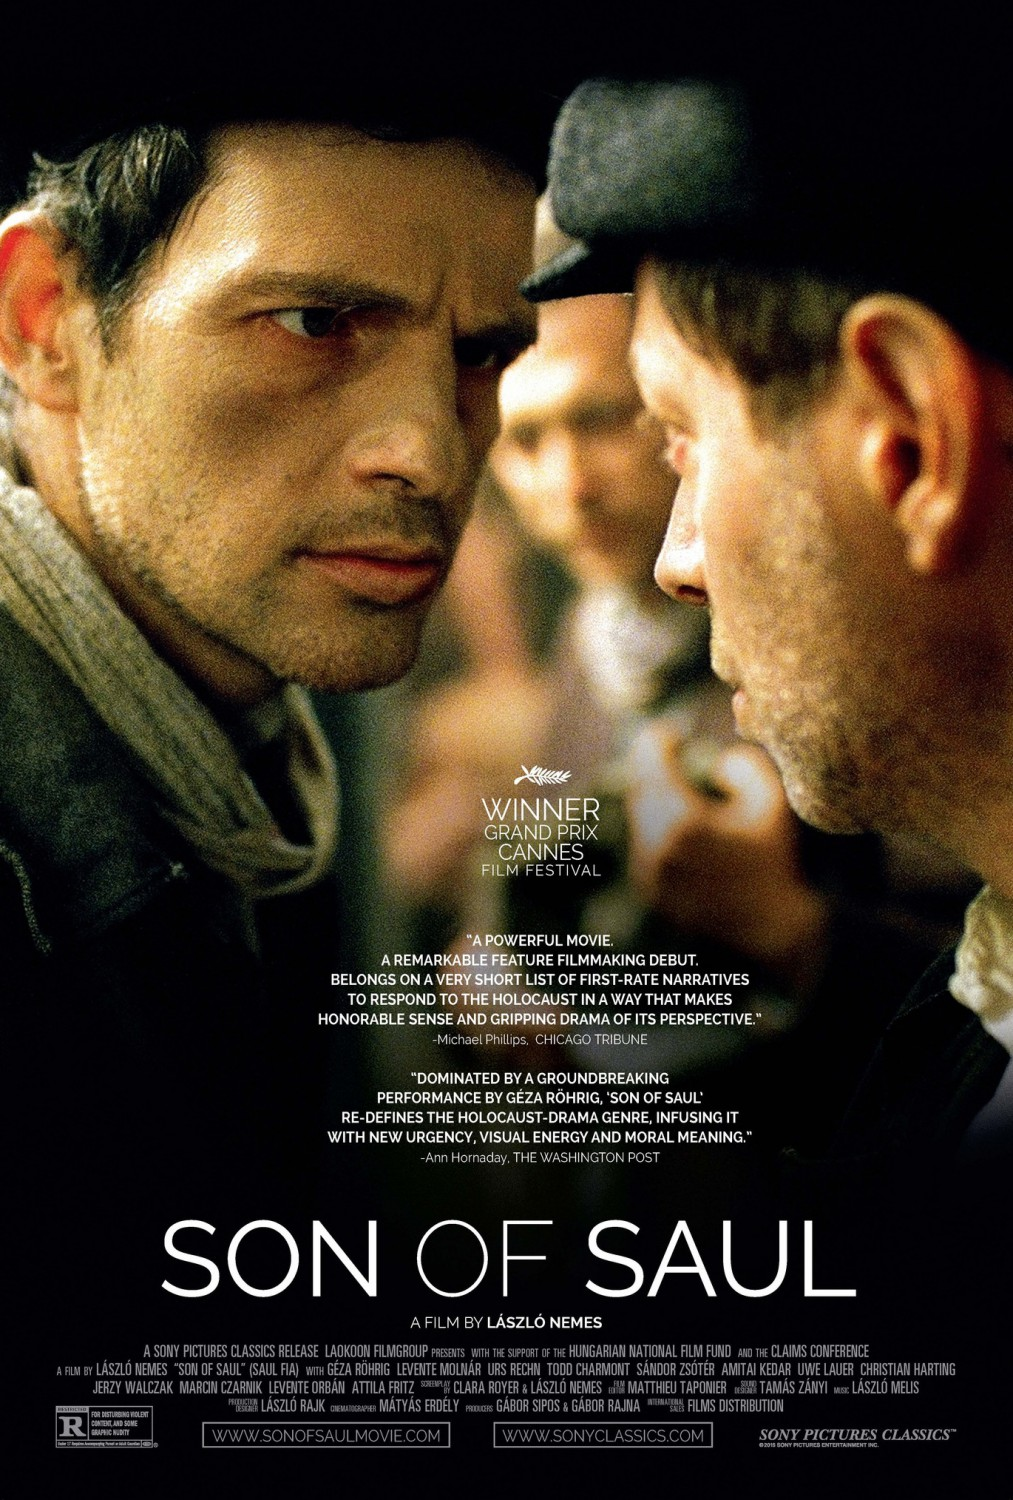 17 - Son of Saul